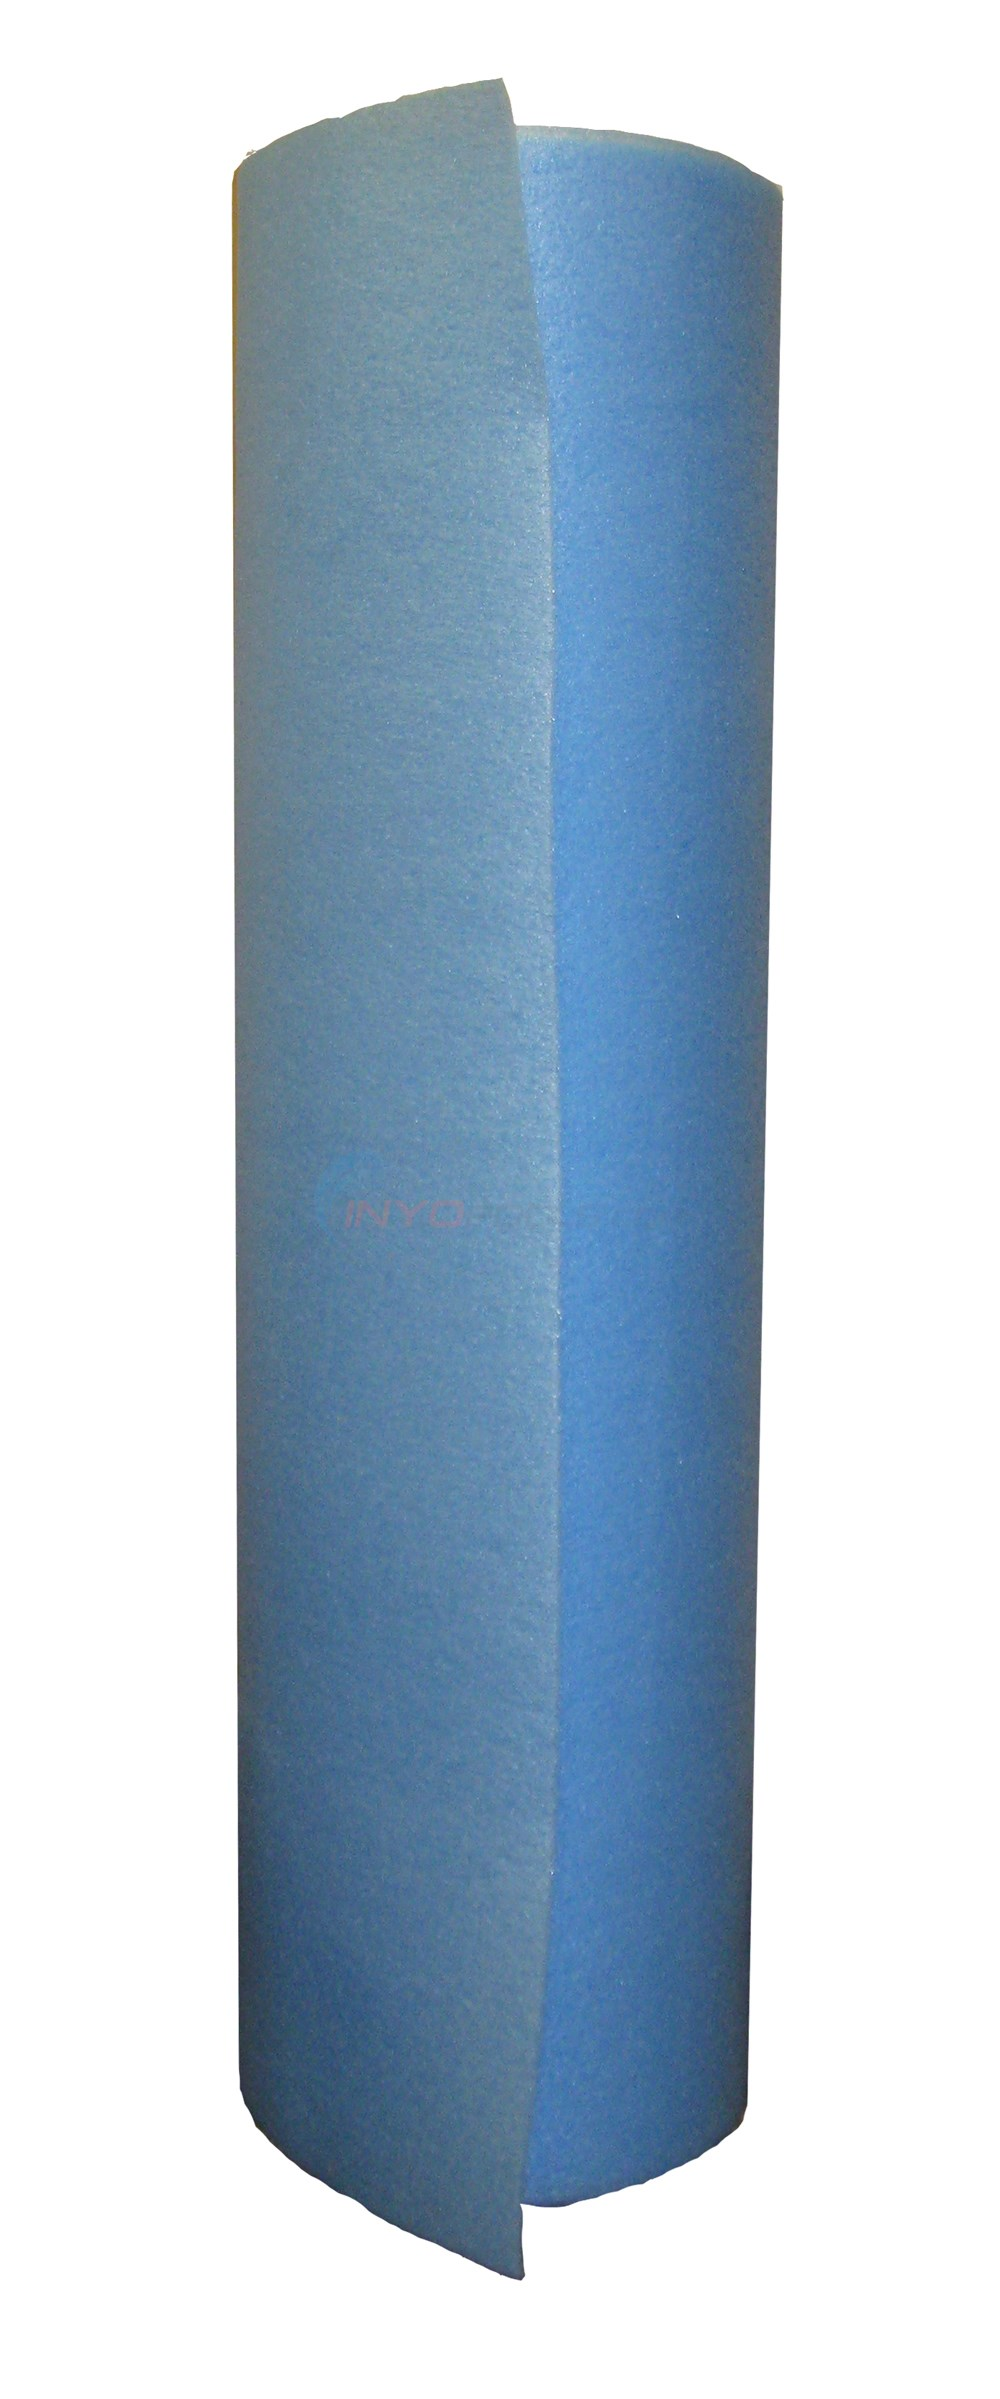 Wall Foam 1/8 x 48 inch x 60 ft. roll - NL110